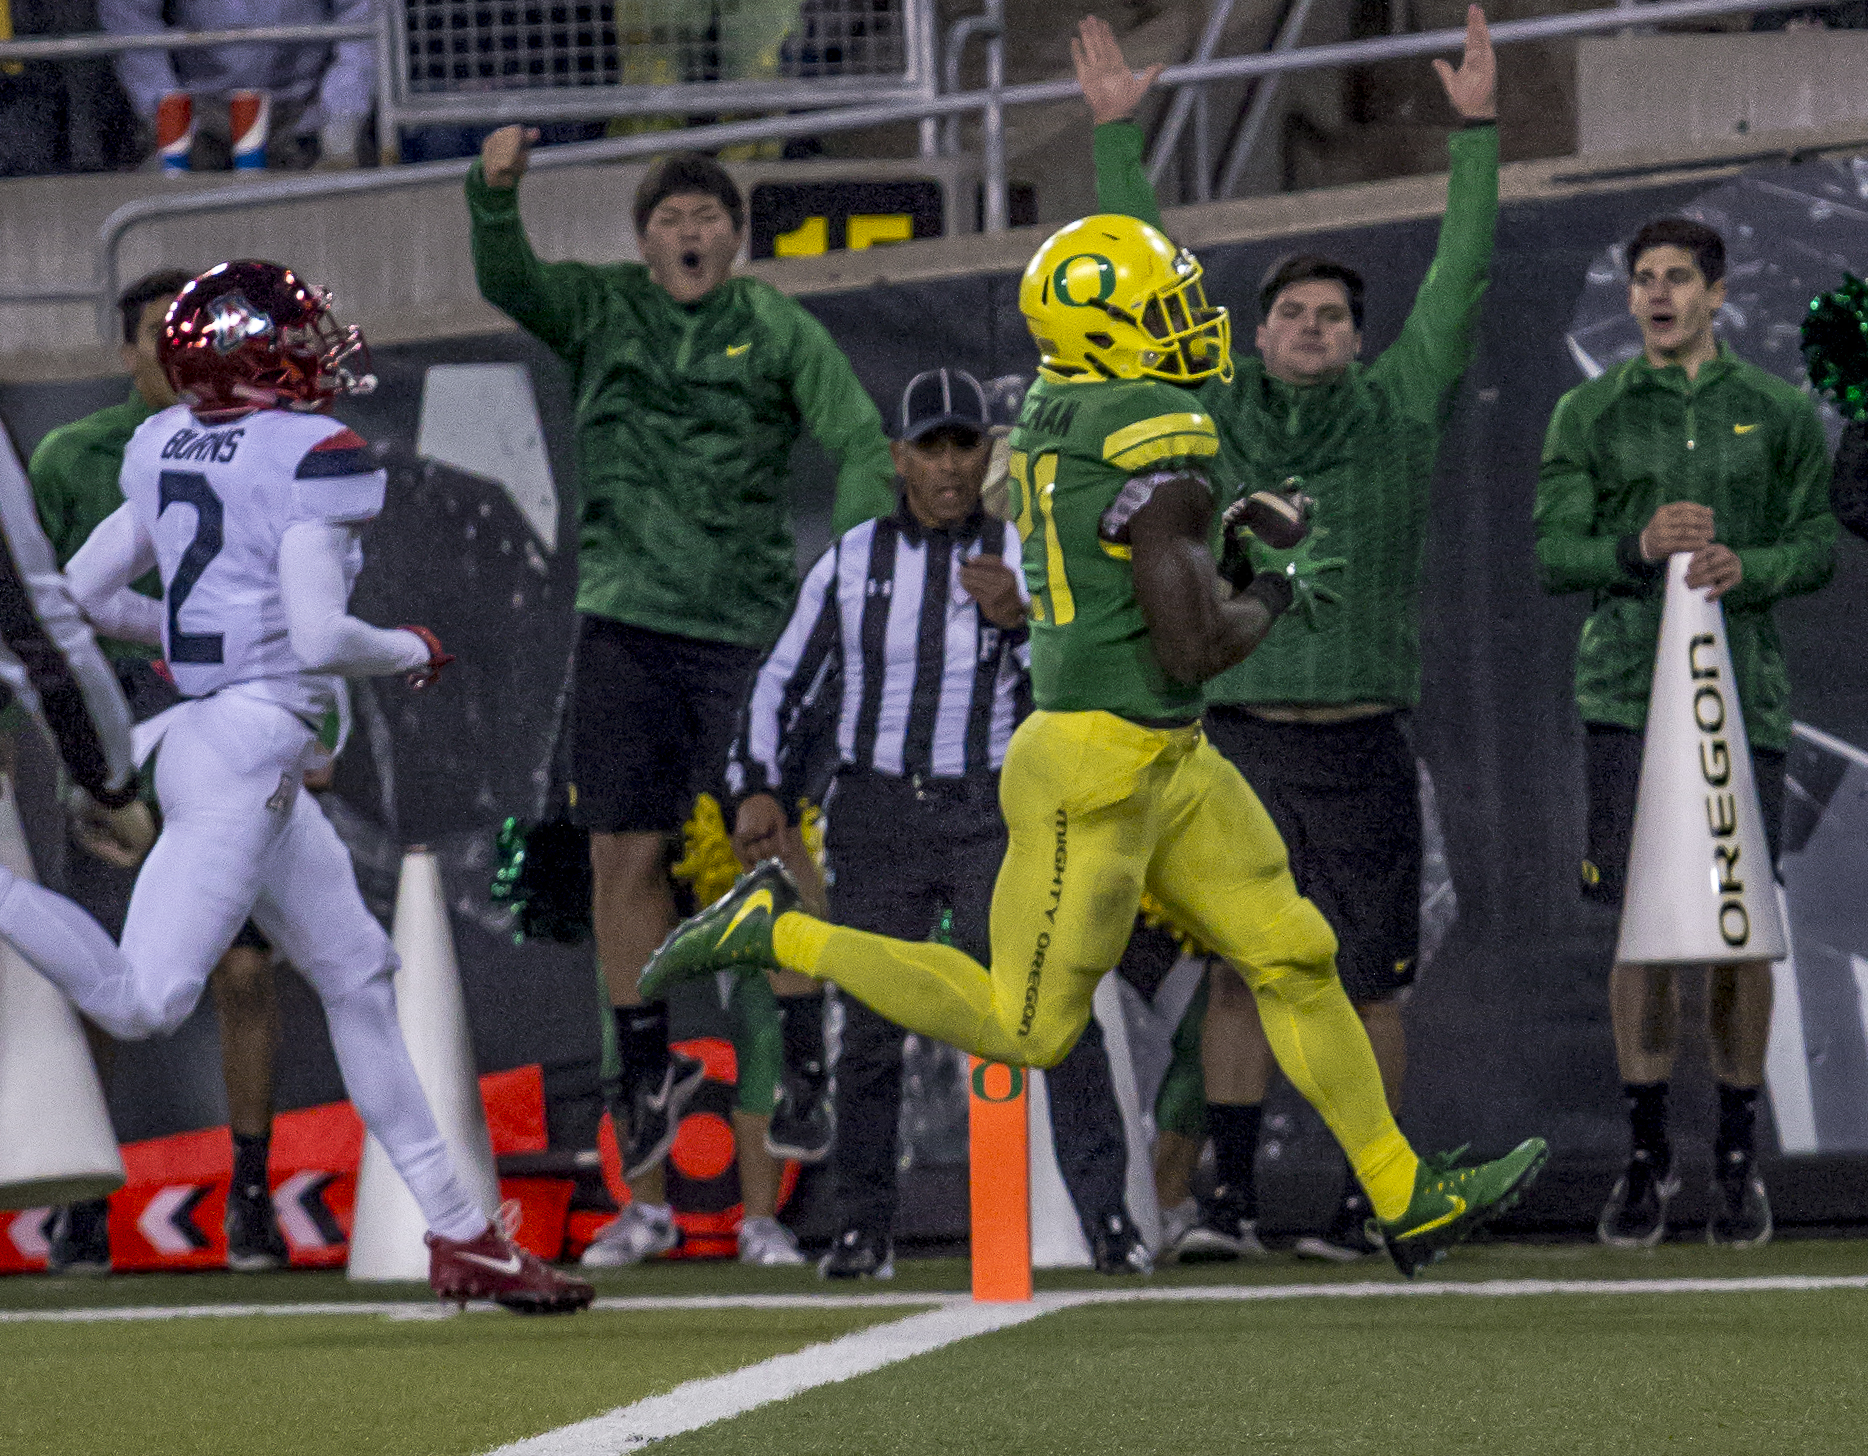 Oregon running back Royce Freeman (#21) runs the ball for a touchdown. The Oregon Ducks lead the Arizona Wildcats 28 to 21 at the end of the first half at Autzen Stadium on Saturday, November 18, 2017. Photo by Ben Lonergan, Oregon News Lab